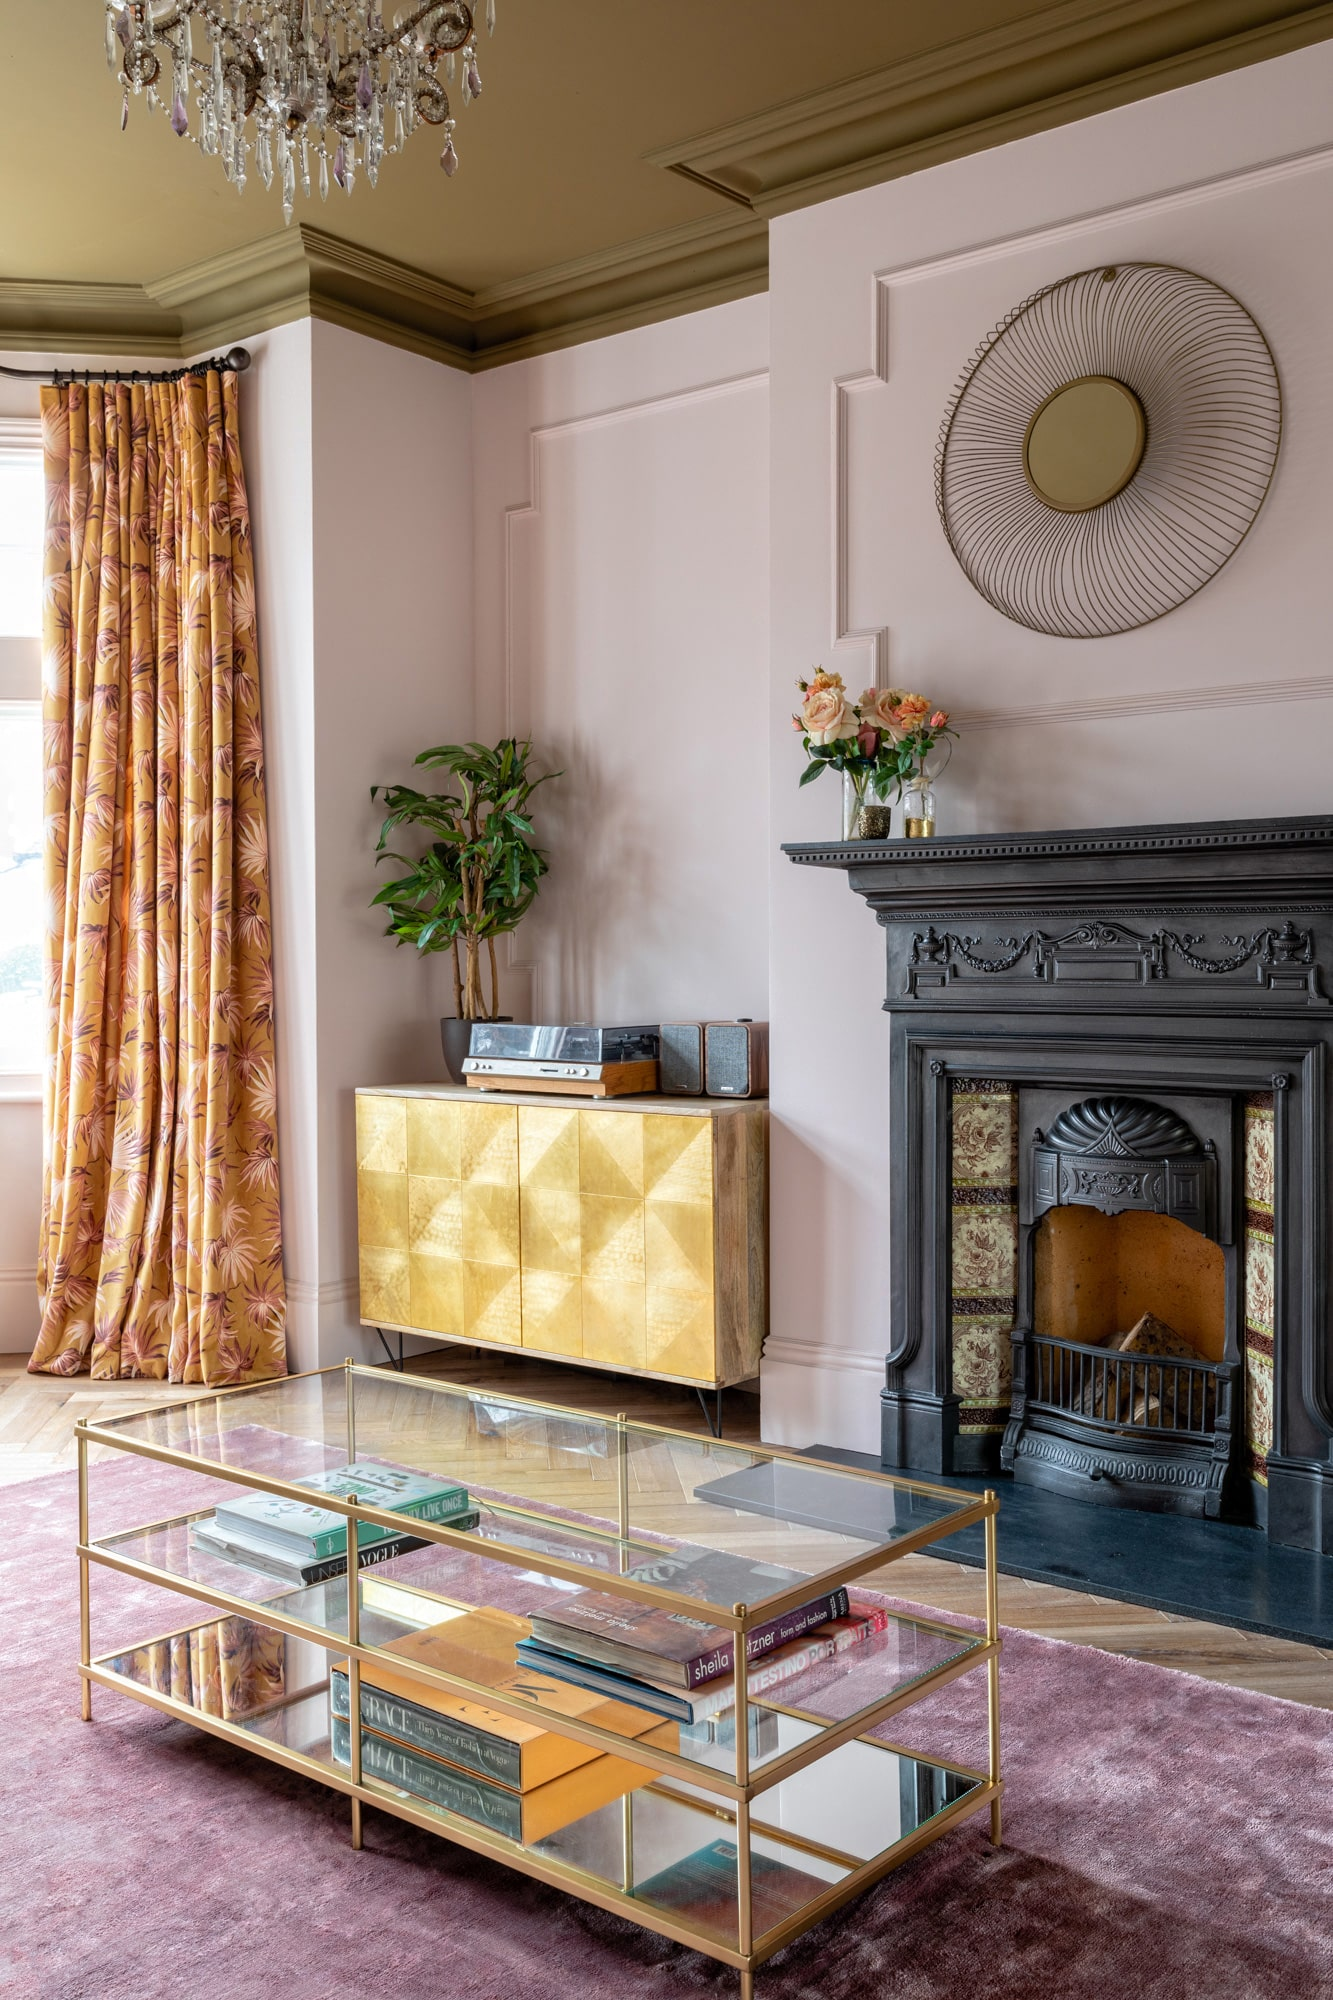 Interior photo: living room with light pink walls and olive ceiling; fireplace with logs; glass and gold metal coffee table; floral print on curtains; golden cabinet in the corner